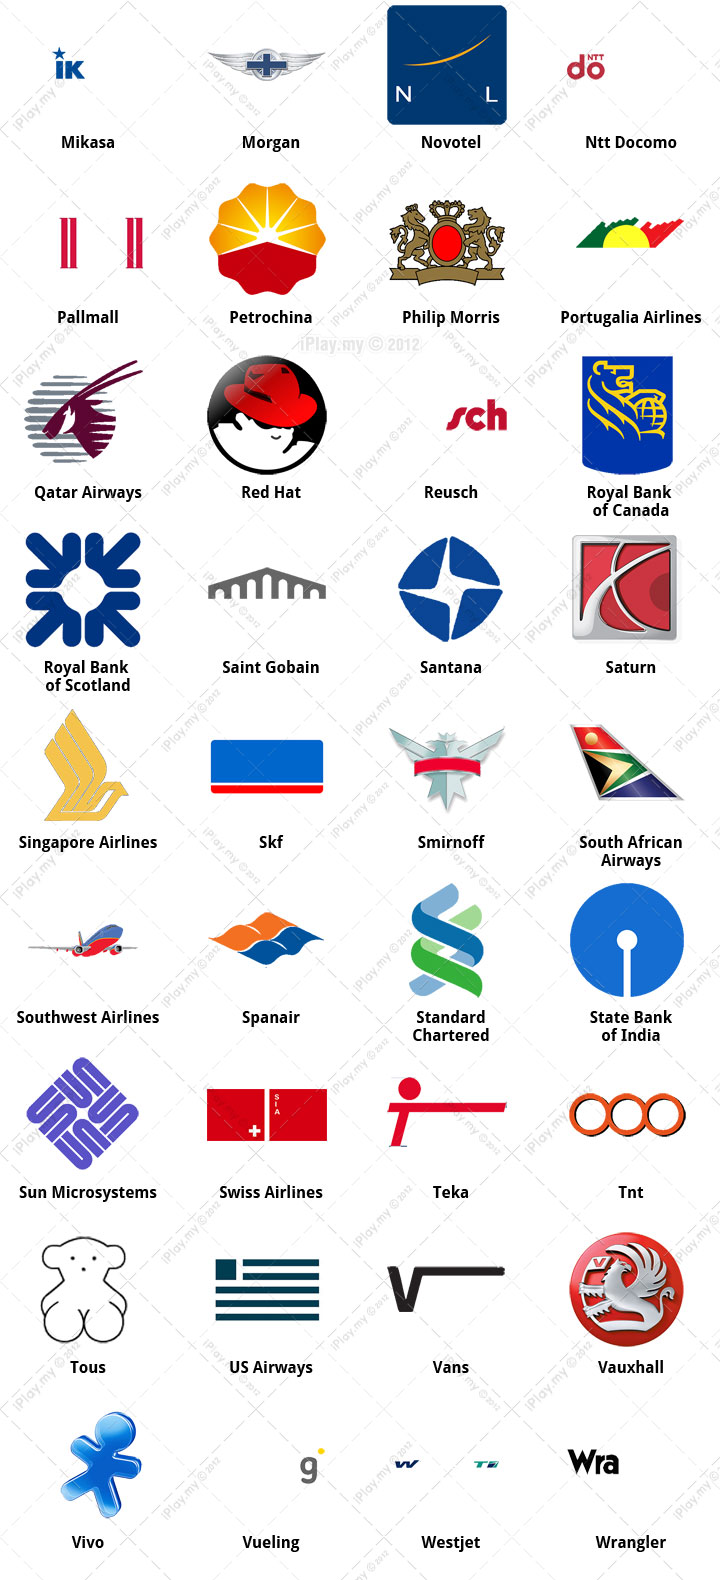 logo quiz answers level 8 10 free Cliparts | Download ...